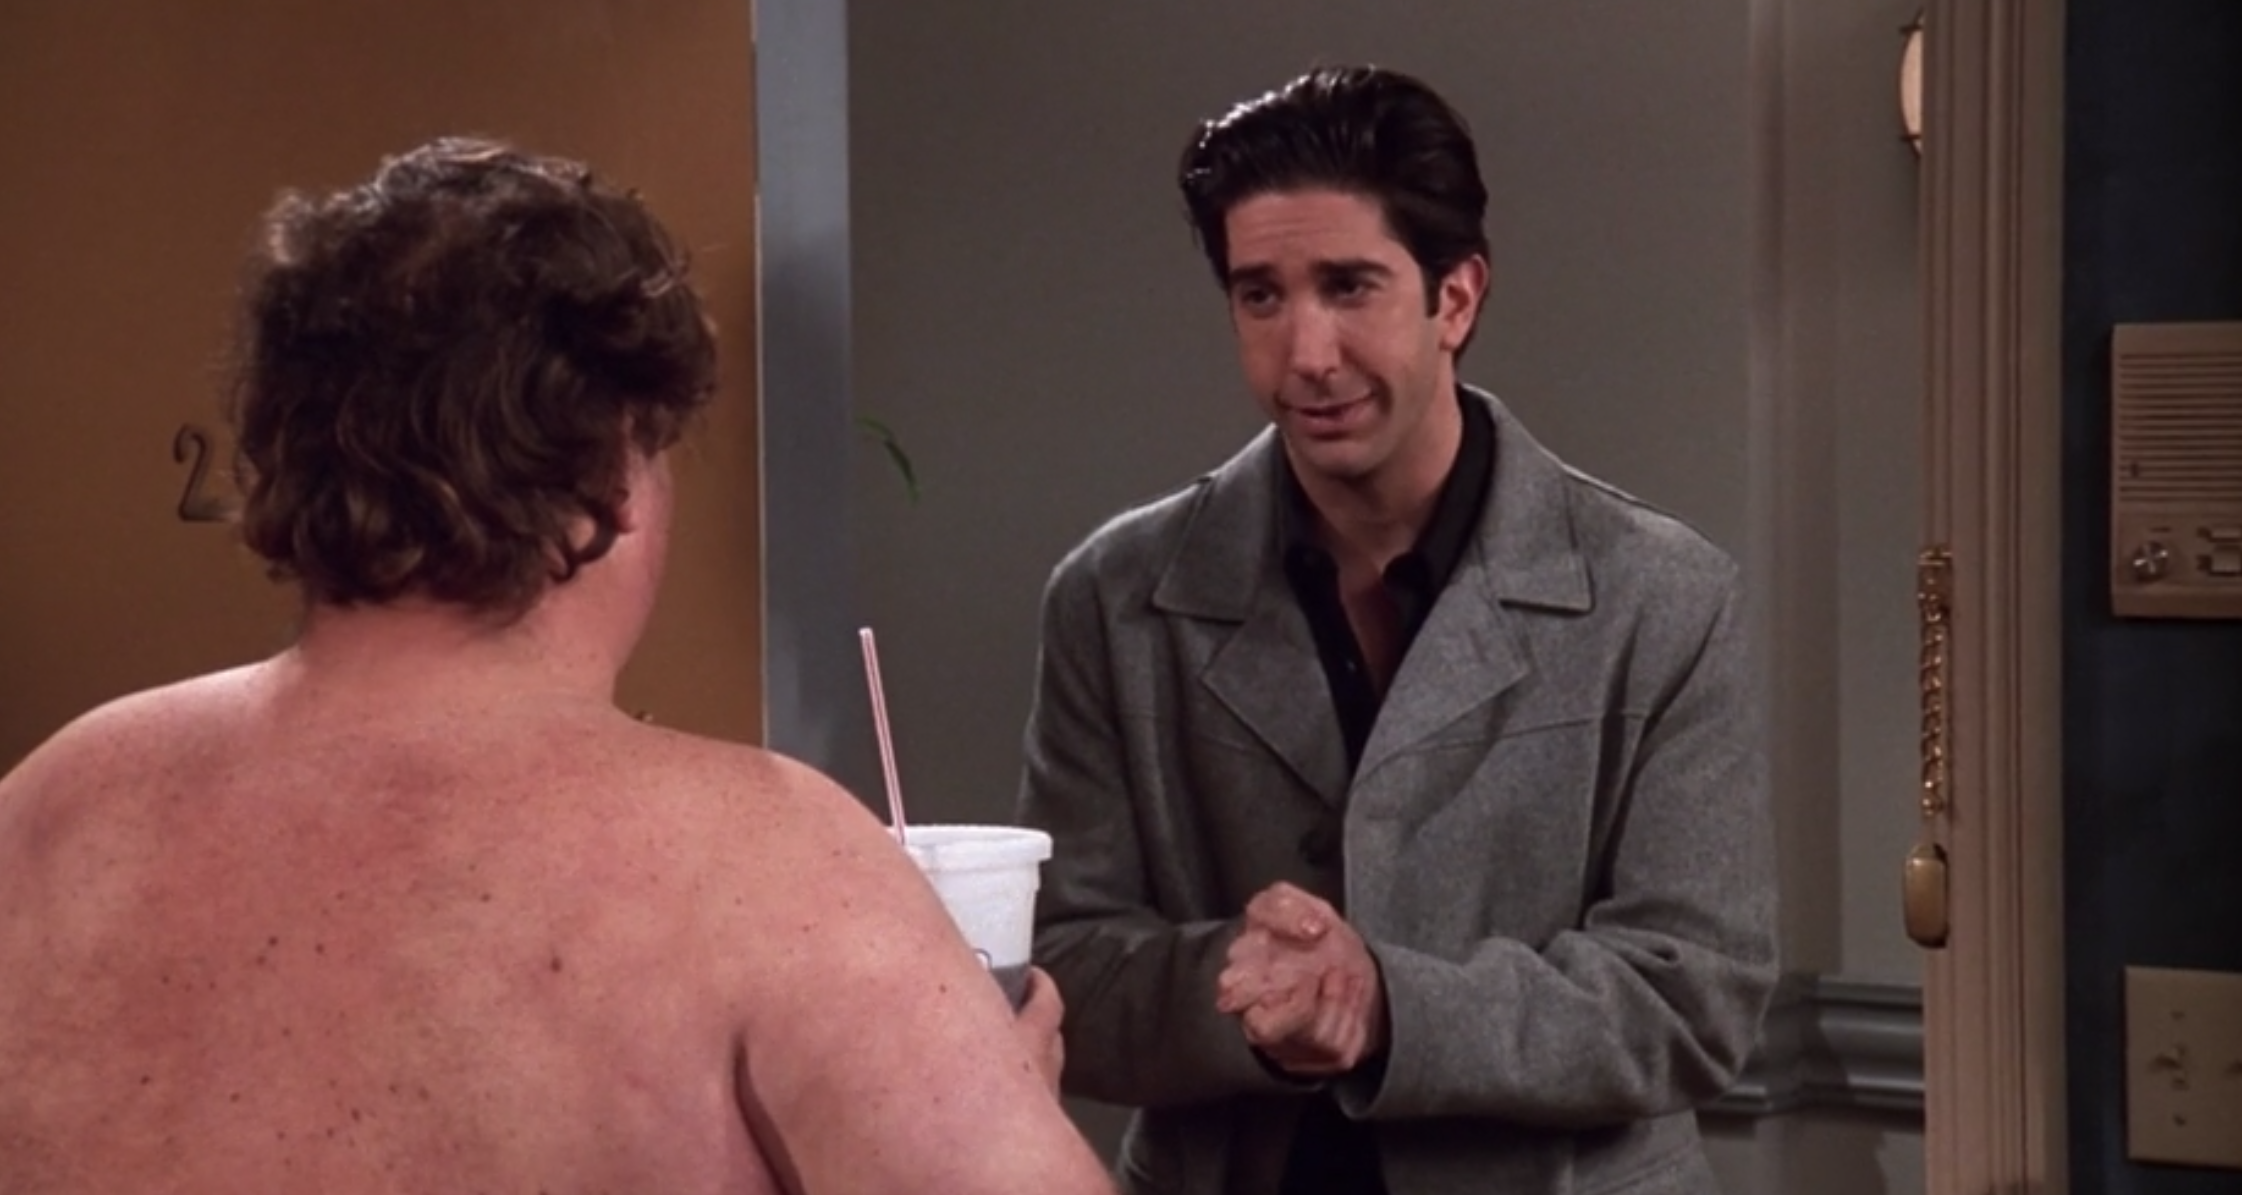 Ross stands with his hands clasped together in front of a naked man holding a soda cup